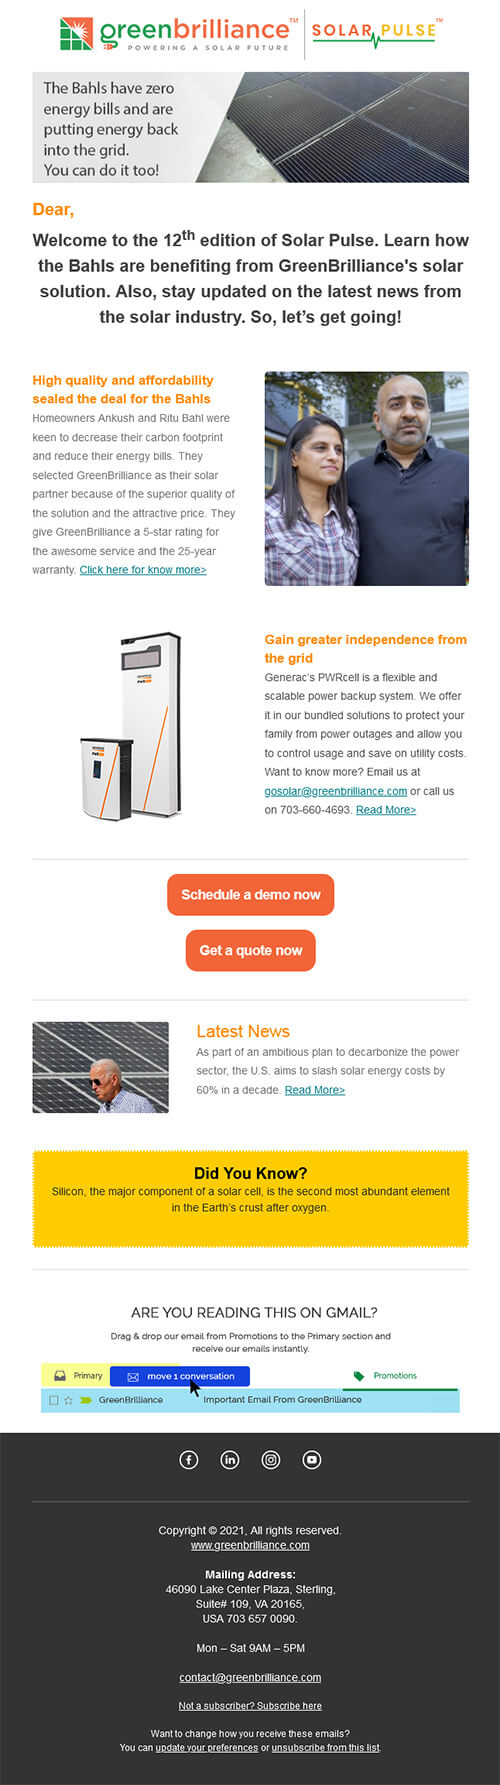 The Bahls have zero energy bills and are putting energy back into the grid. You can do it too!